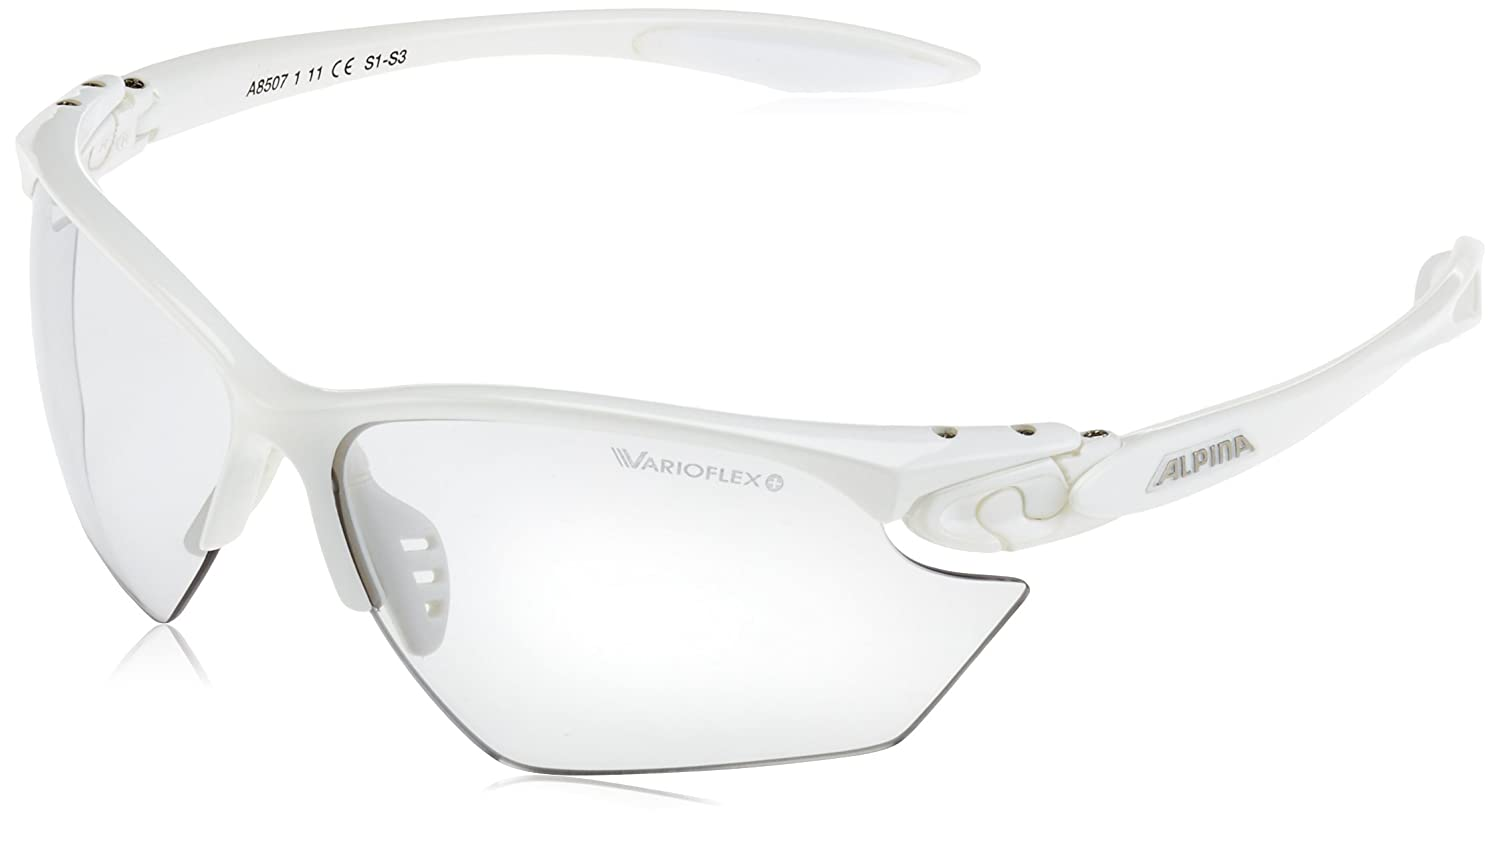 ALPINA Gafas de Sol Performance Twist Four S VL + Deportes ...